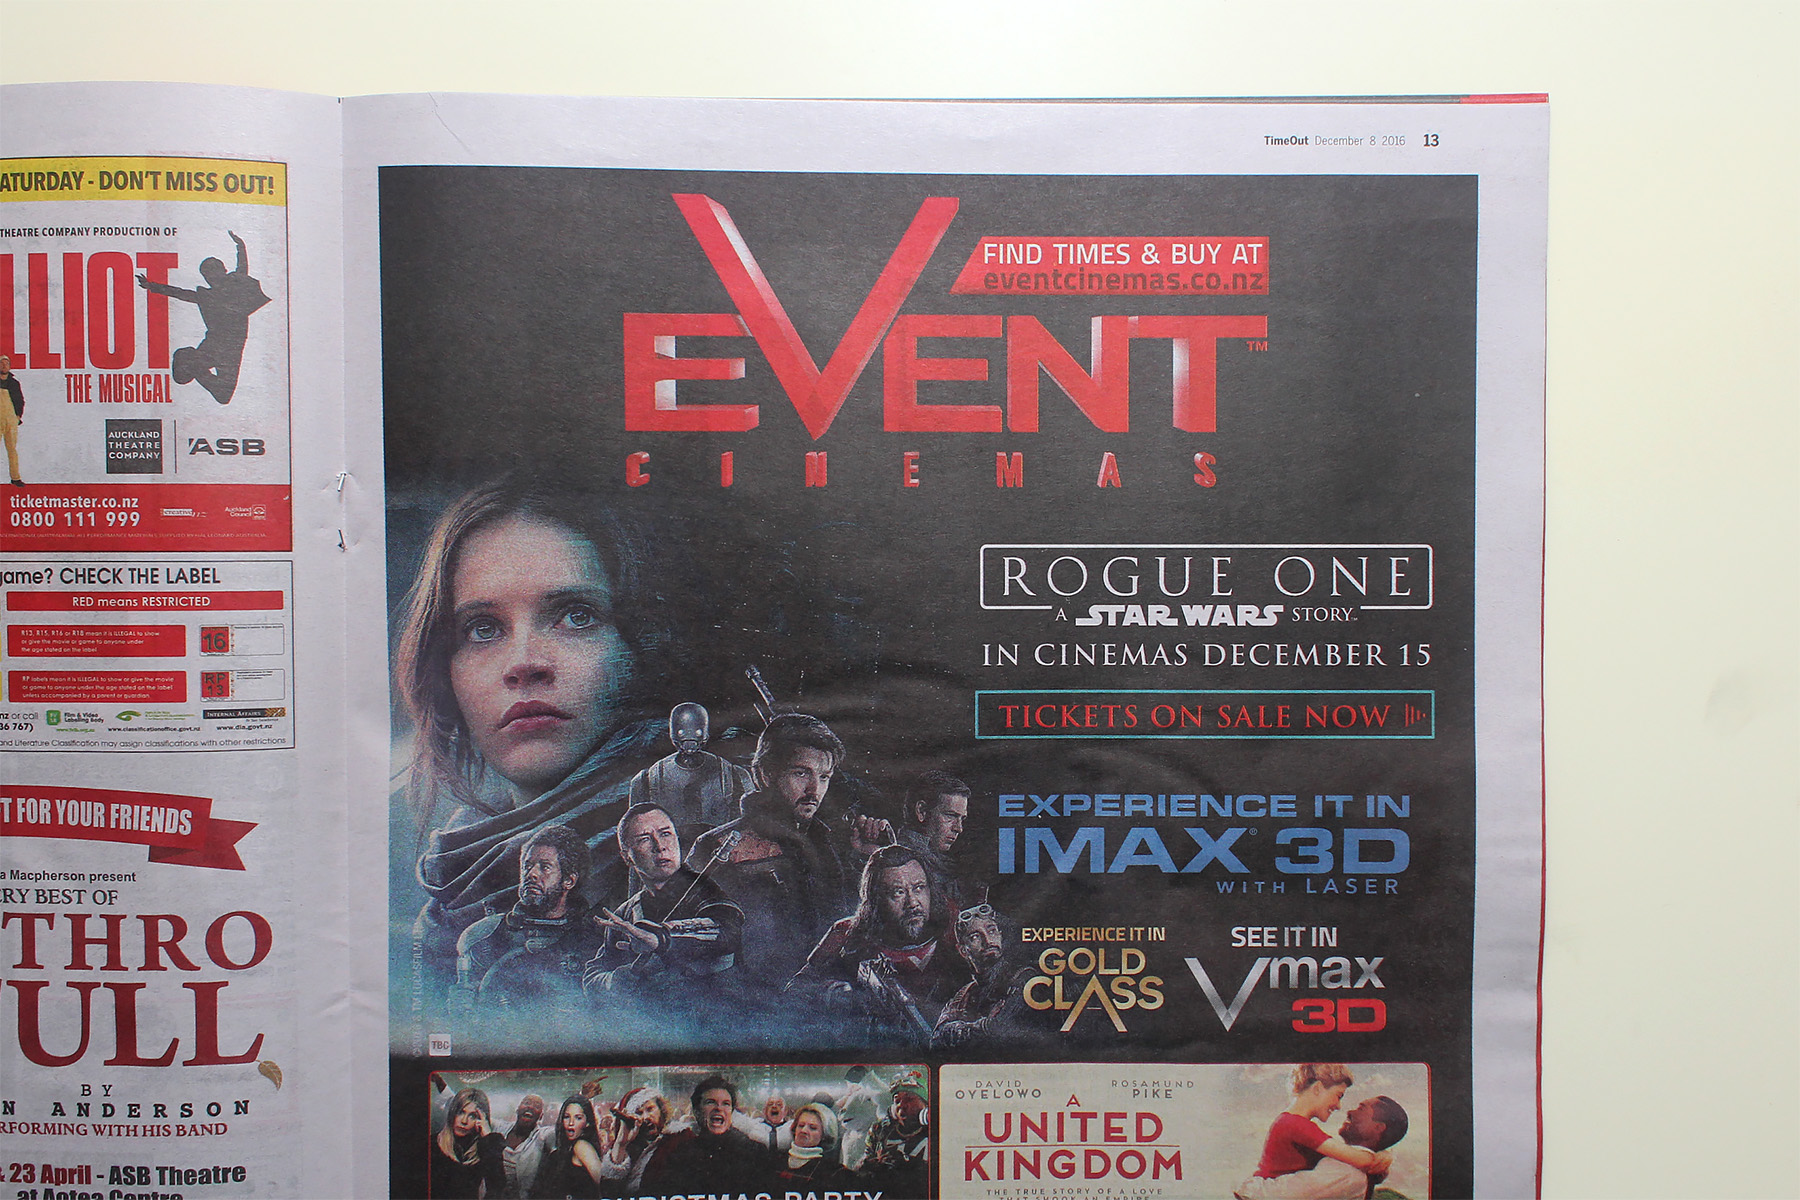 Nz Herald: Rogue One In NZ Herald Time Out